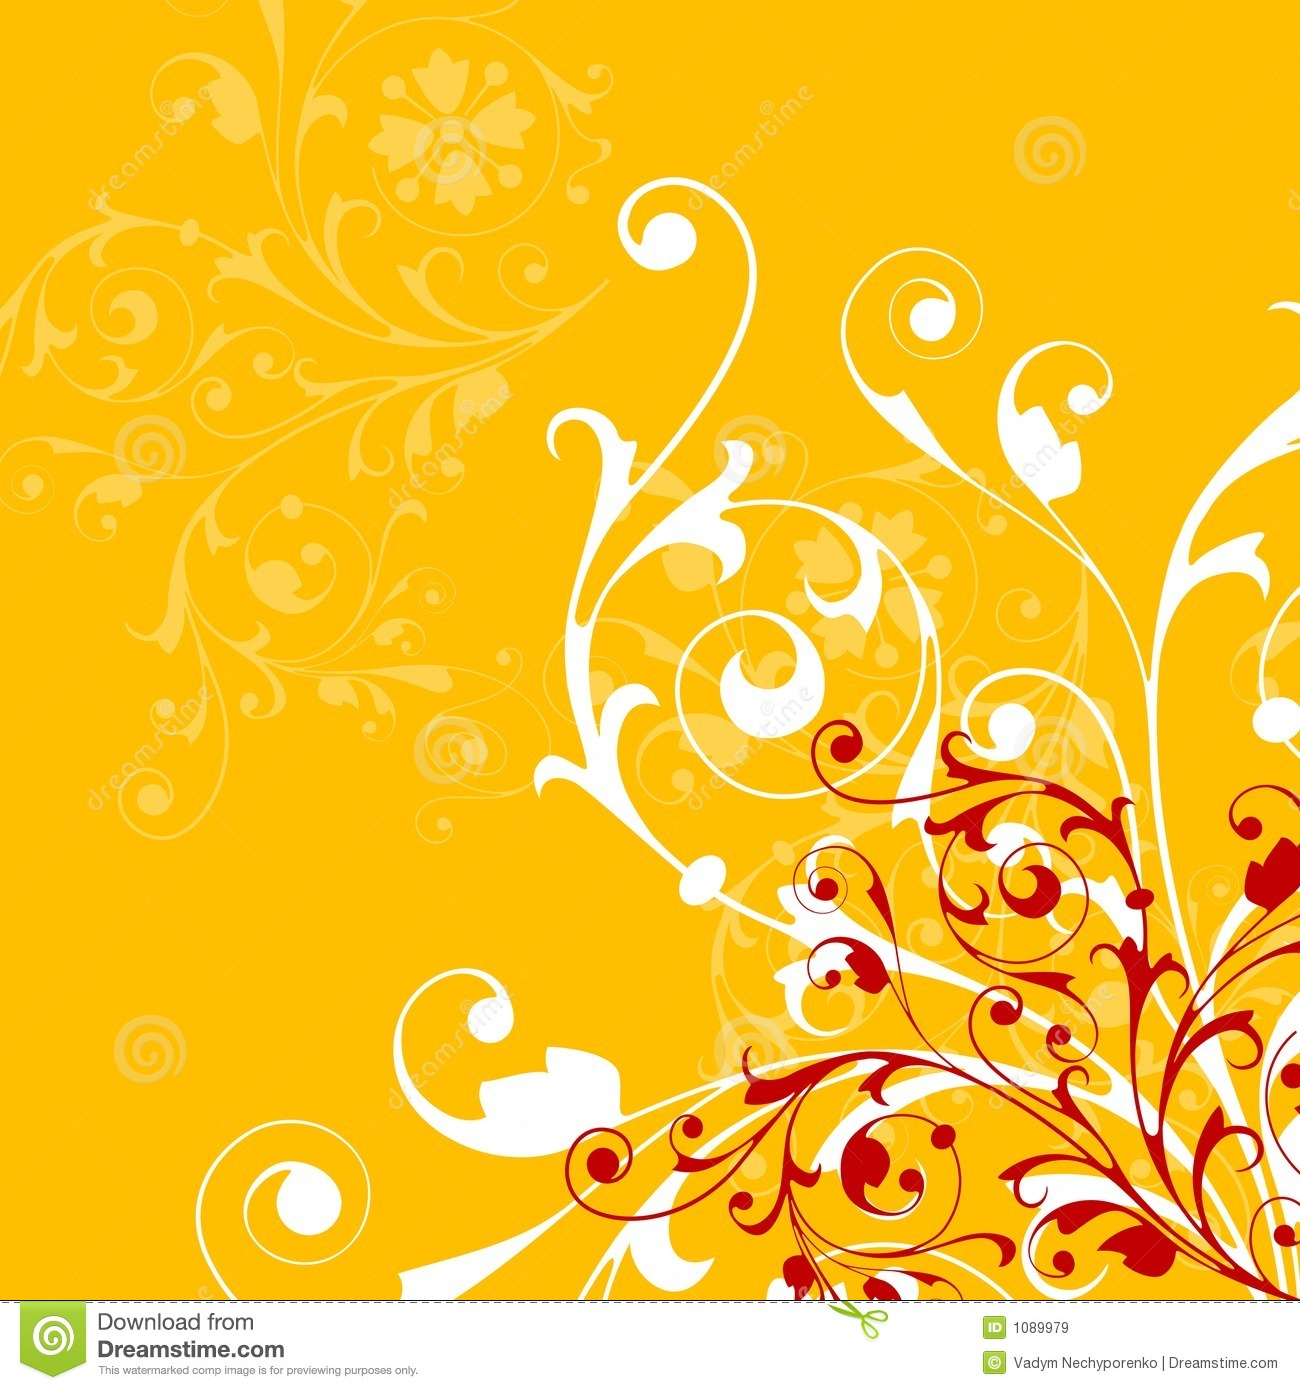 Abstract Flower Background With Decoration Elements For: Abstract Orange Background With Floral Elements Royalty